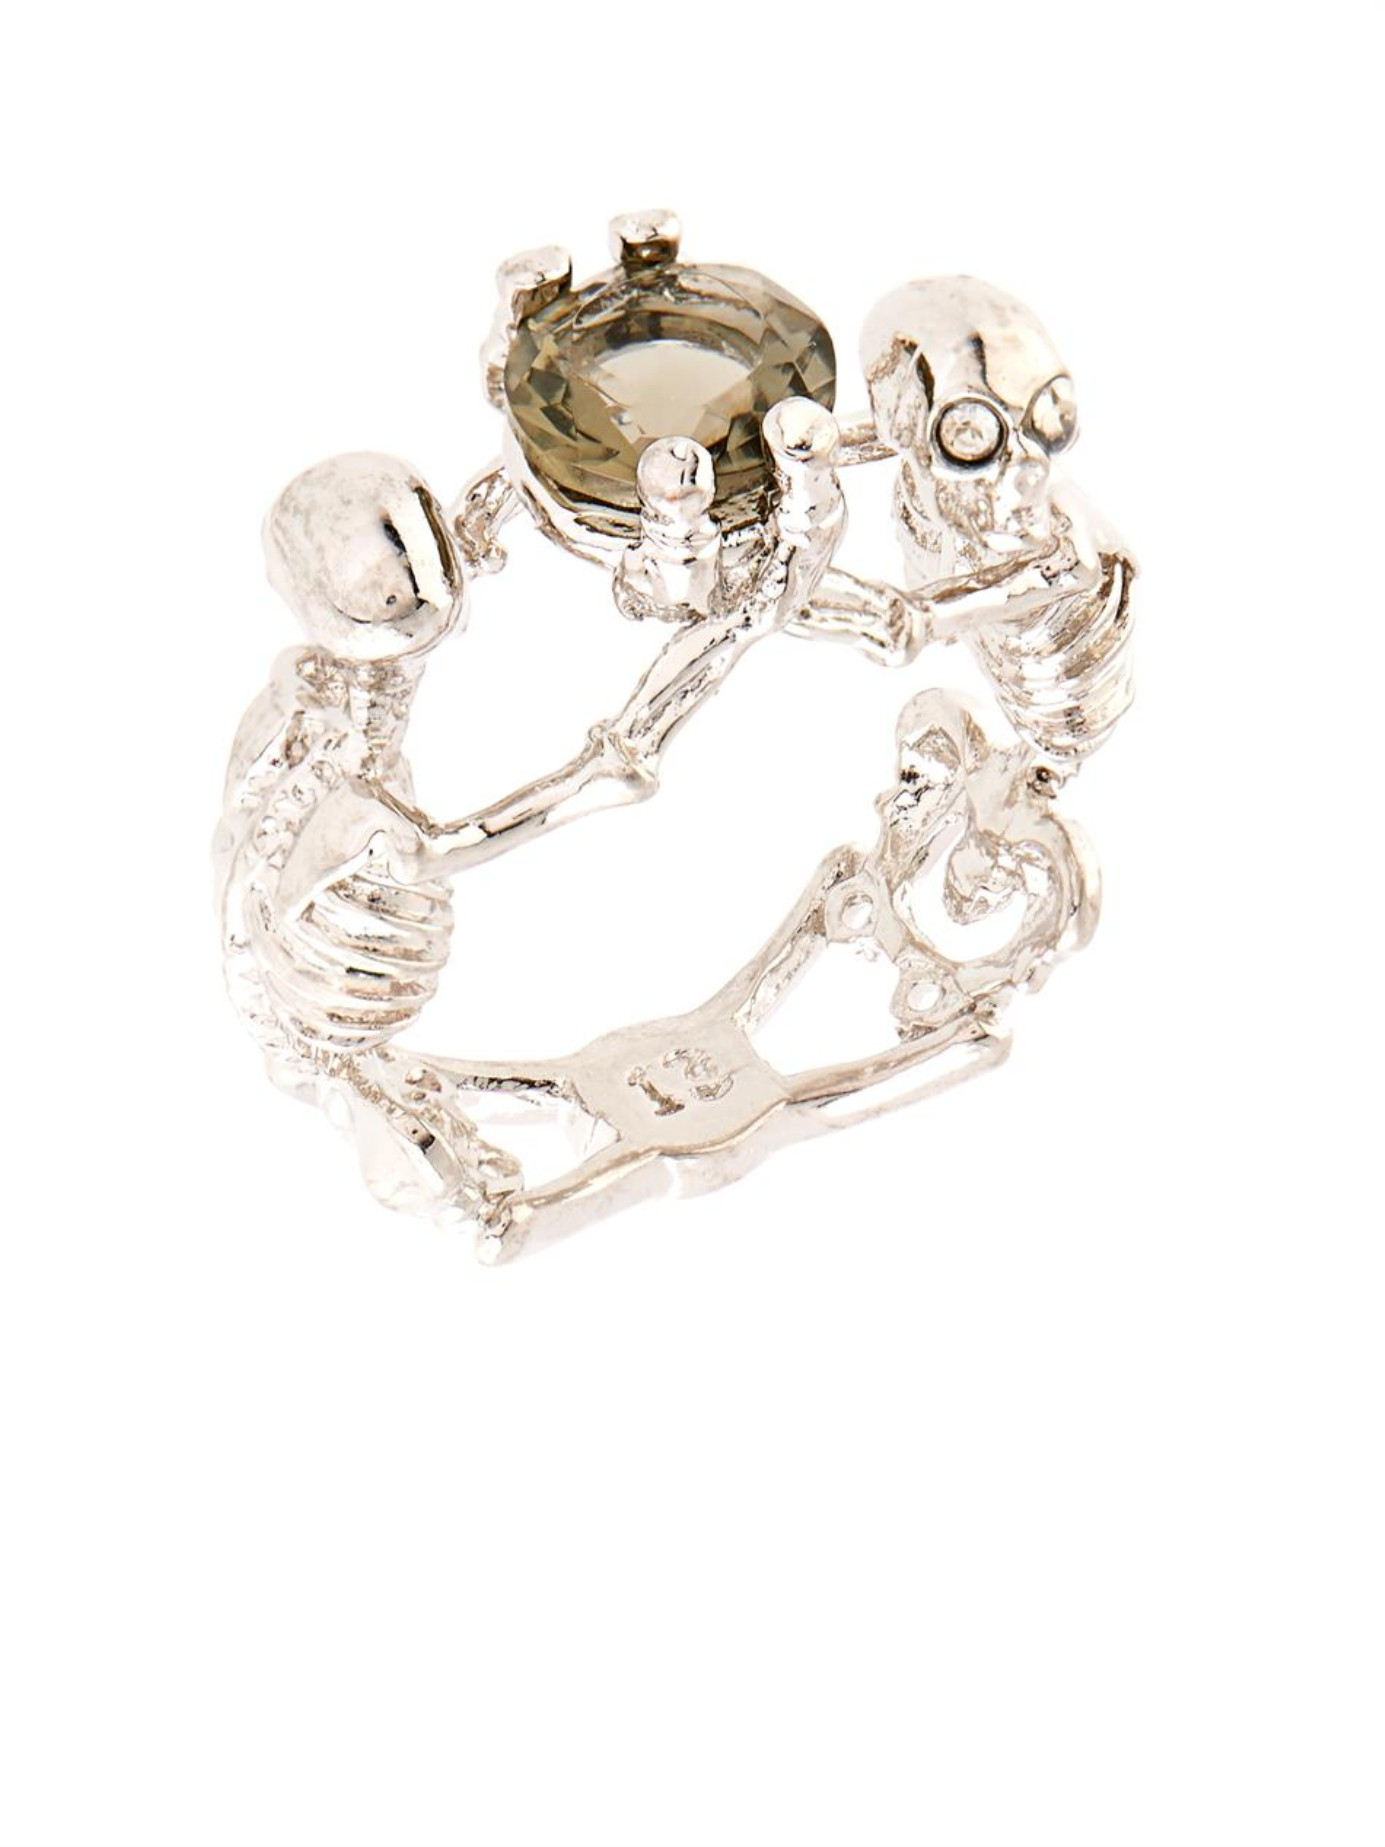 steel stainless skeleton jewelry ring unique vintage s man rings skull biker fashion pin punk men doreenbeads smile